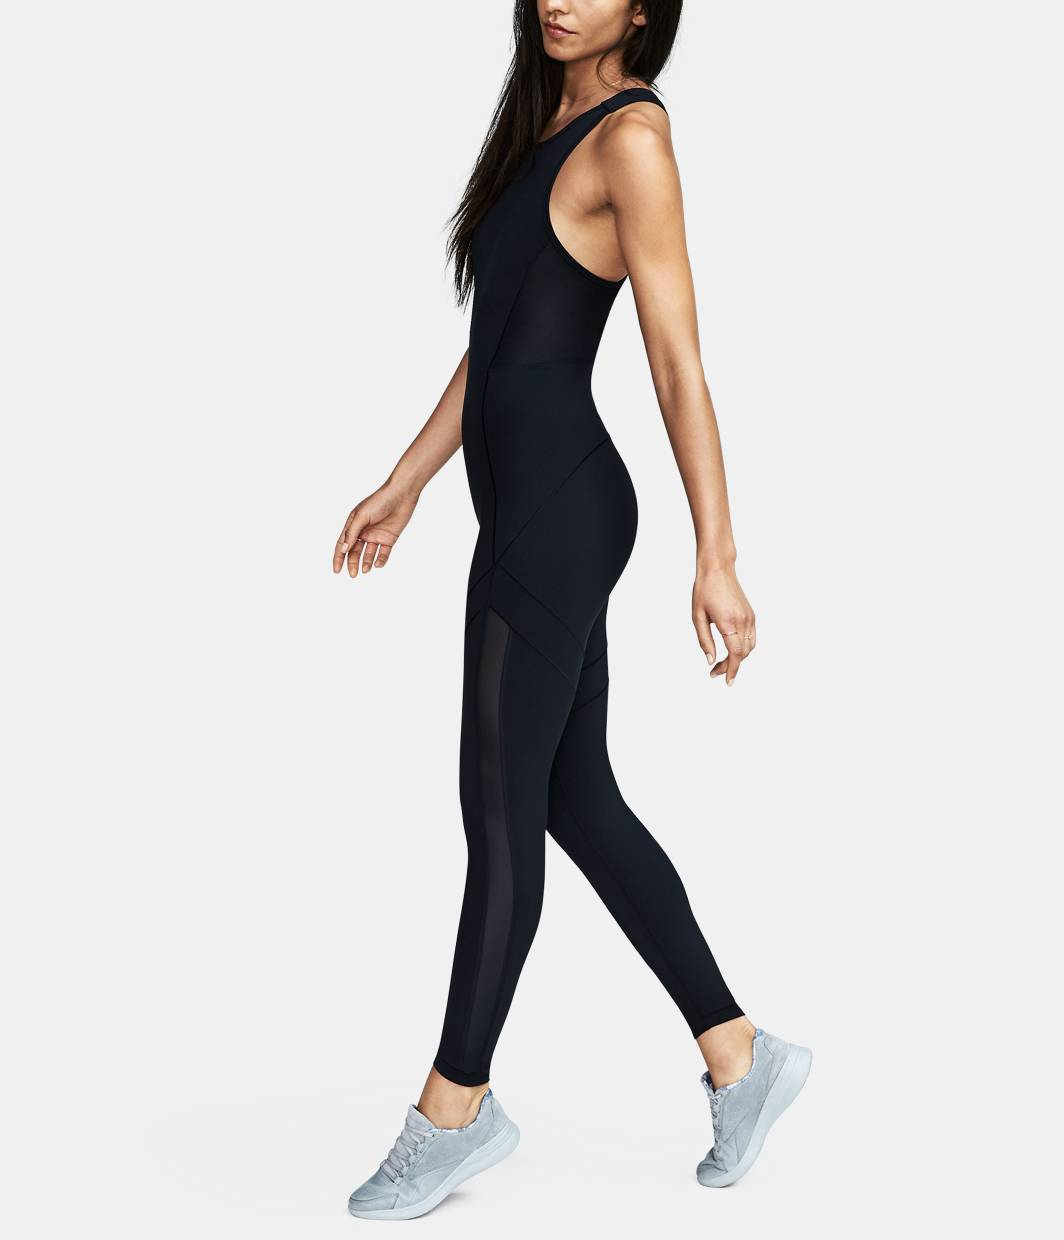 Where to Buy Cheap Under Armour Online? Under Armour Outlet Store Online Sale Under Armour Products New Collections ! Discount Under Armour Shoes/Boots Clearance Sale, Up To 80% OFF!